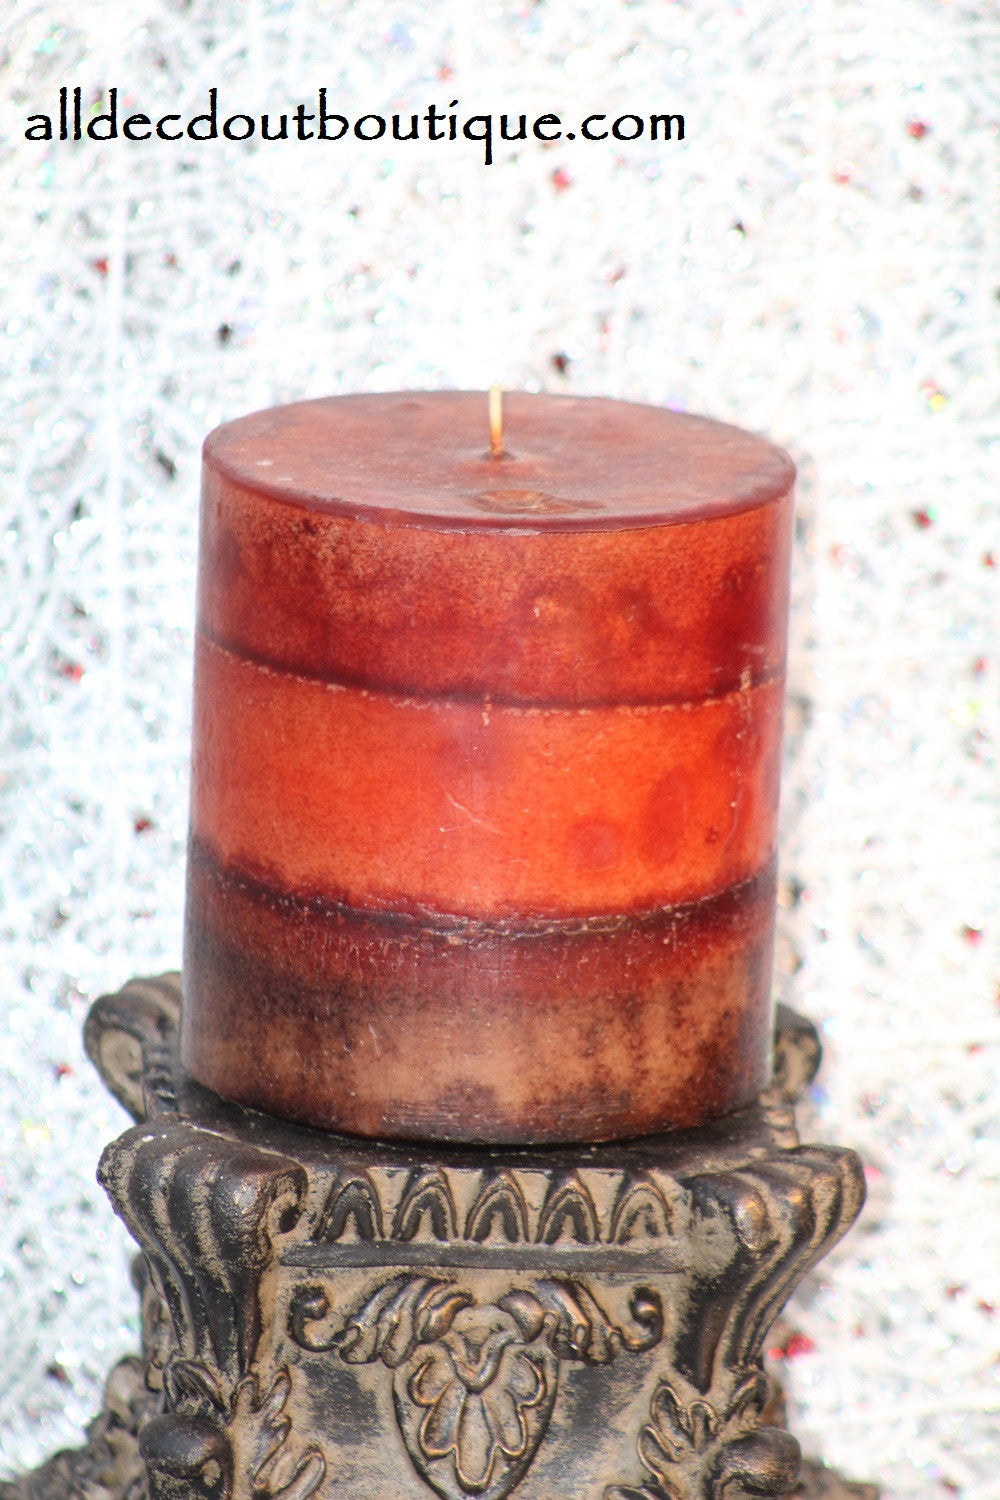 Pillar Candle | Multi Color Scented Decor Candle - All Decd Out